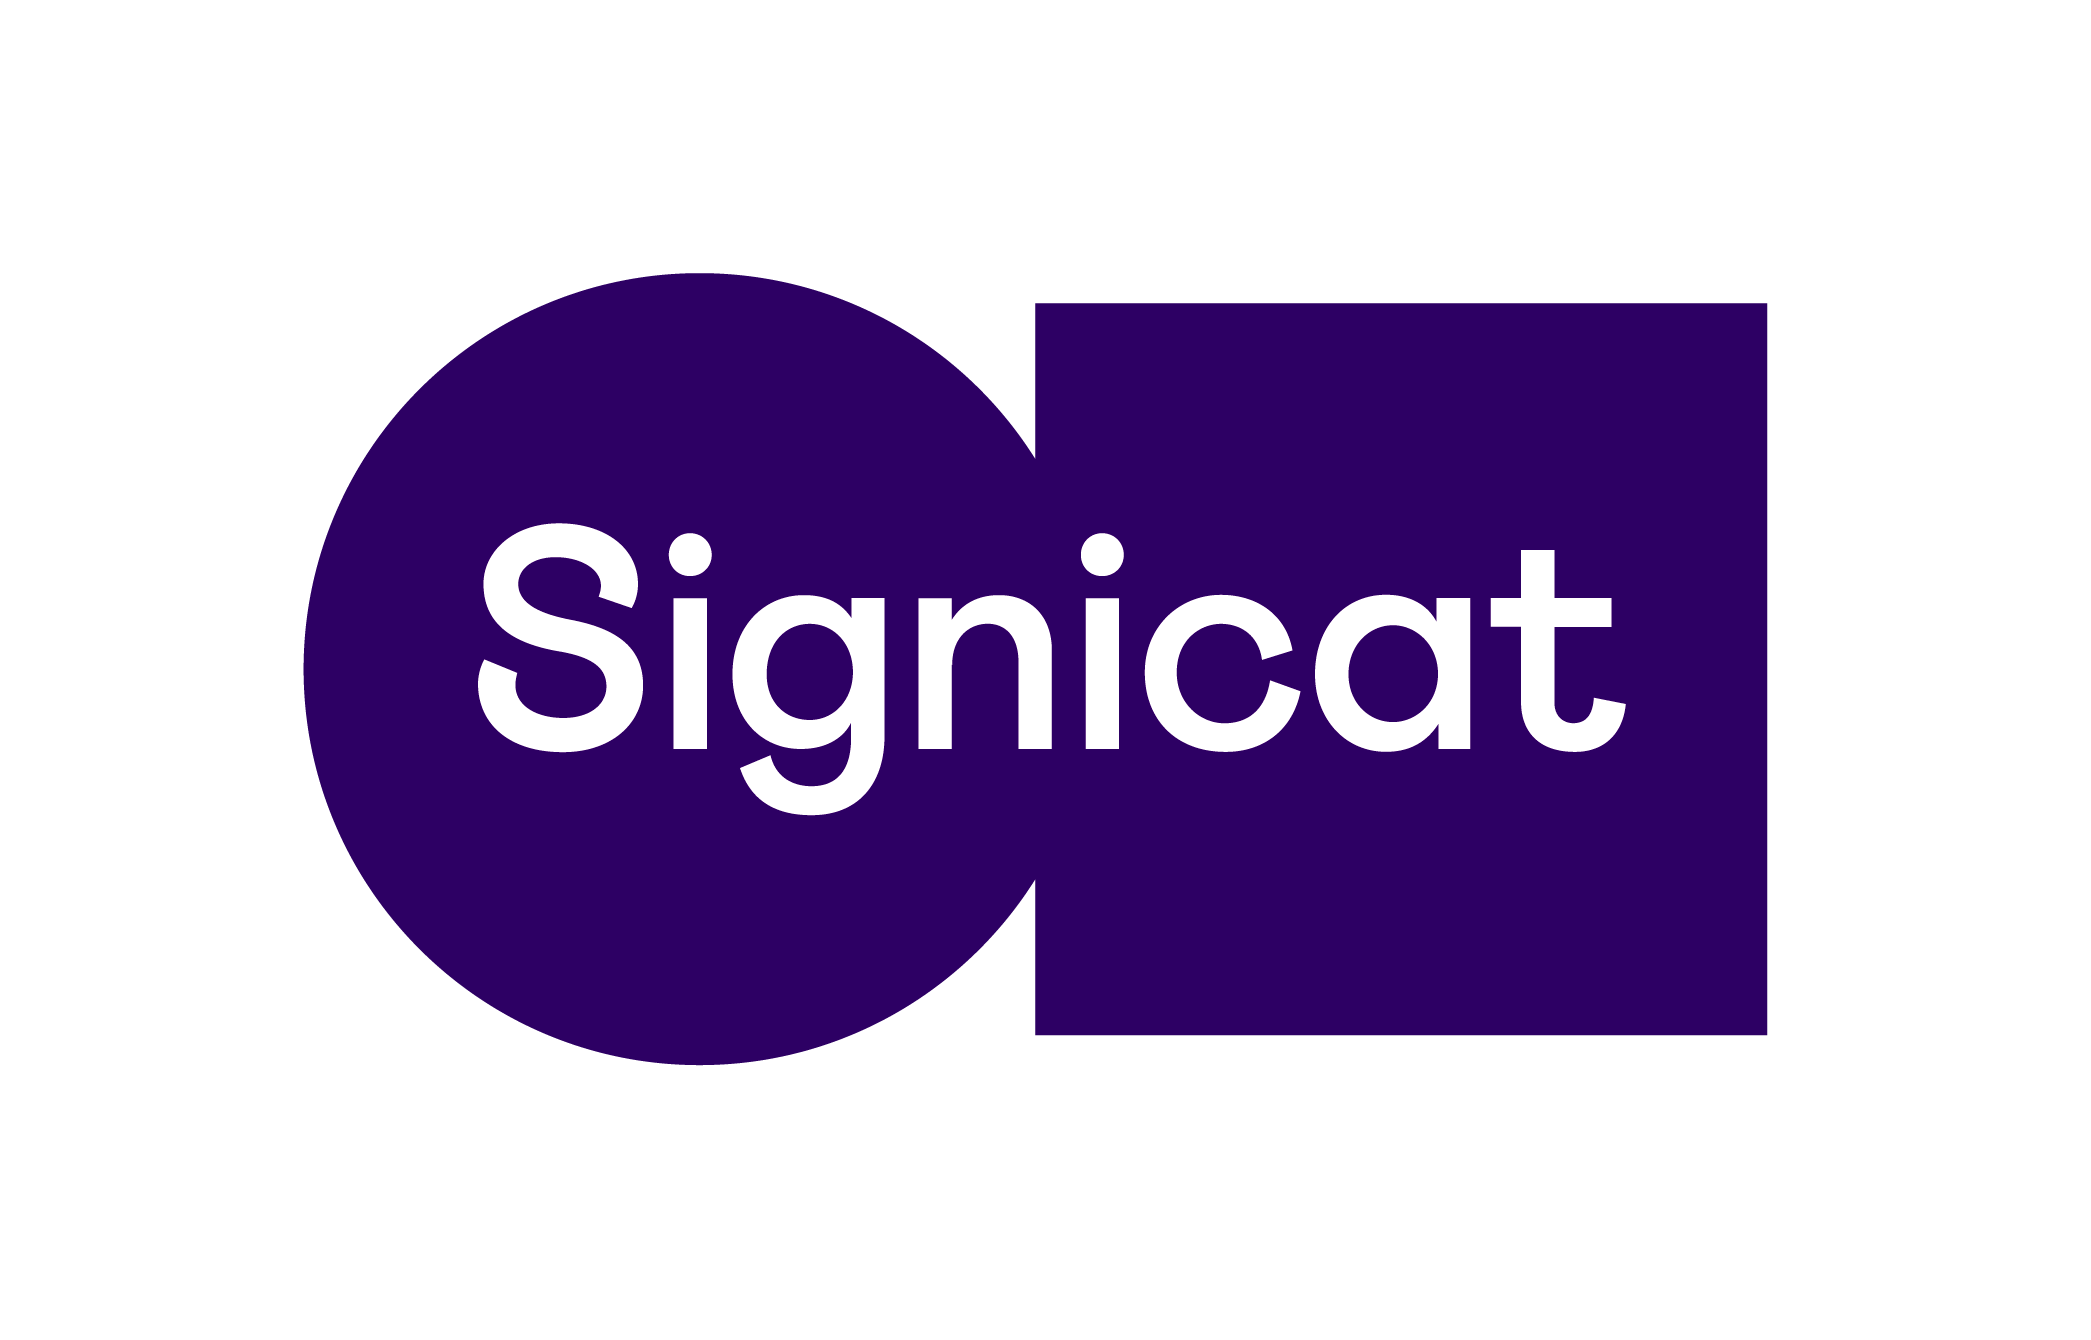 Leading P&c Insurance Company, if, Expands Agreement With Signicat Across European Borders Following Successful Cooperation in the Nordics